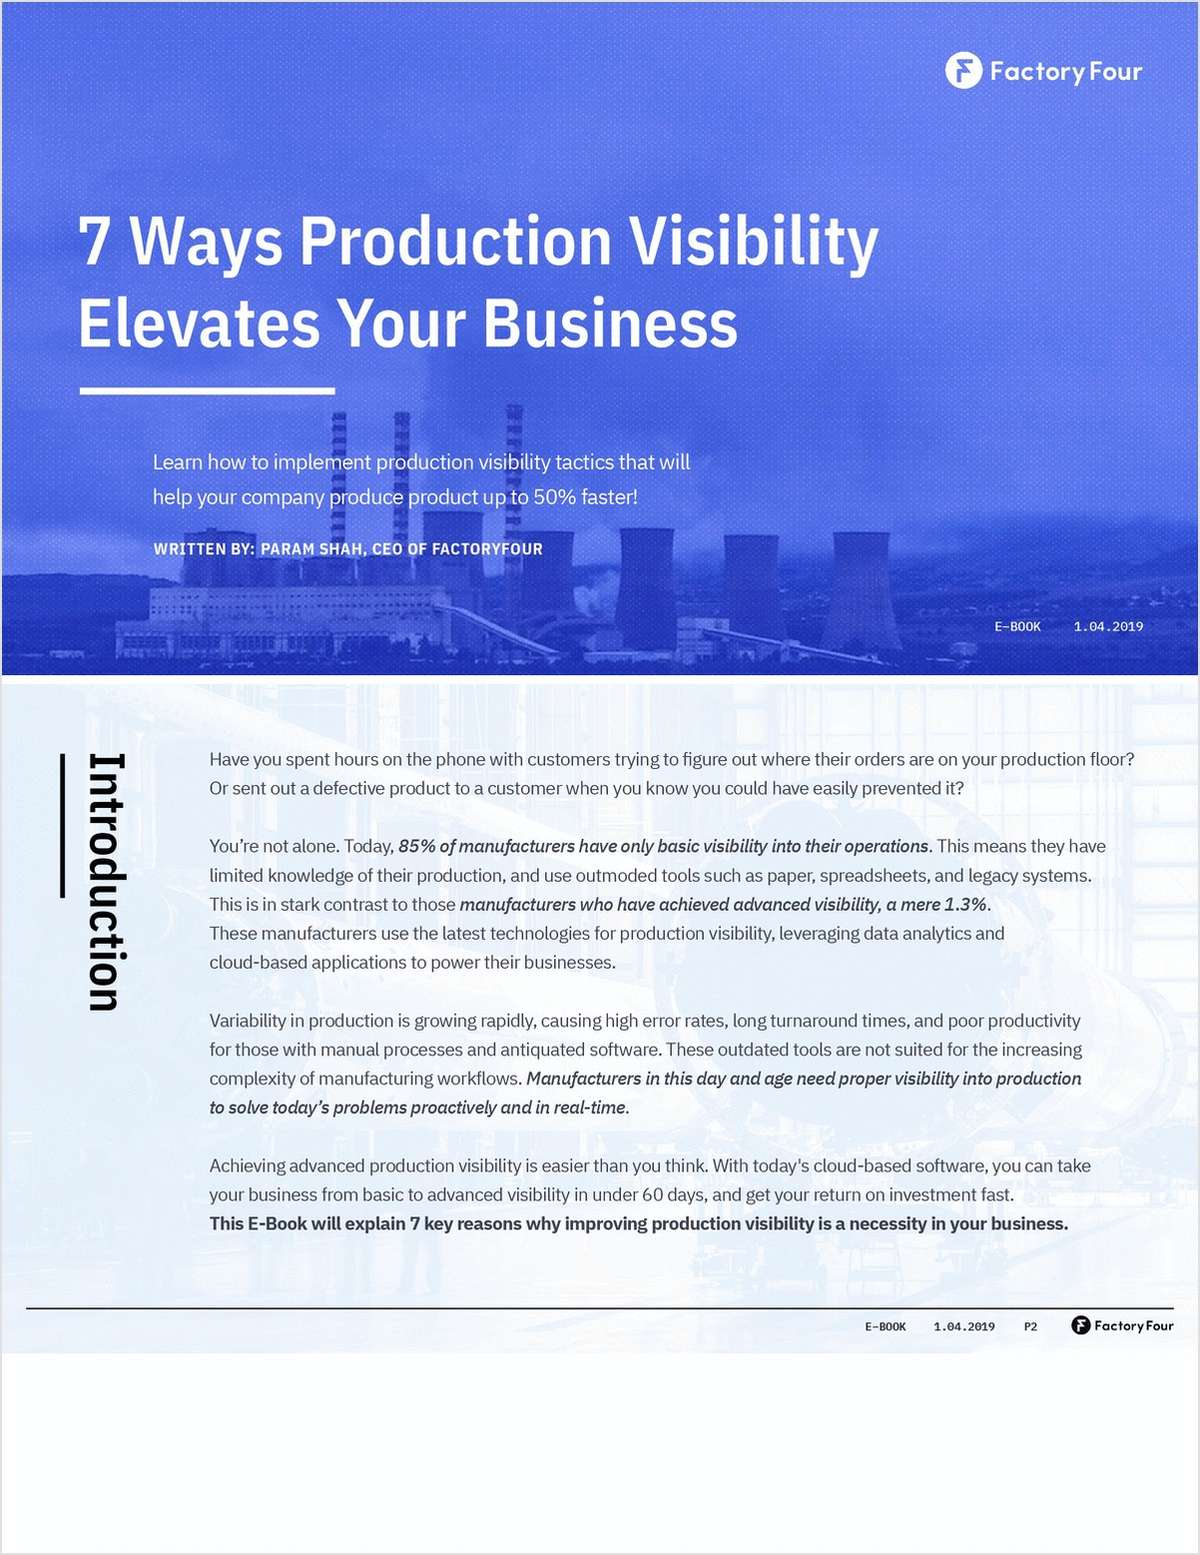 7 Ways Production Visibility Elevates Your Business